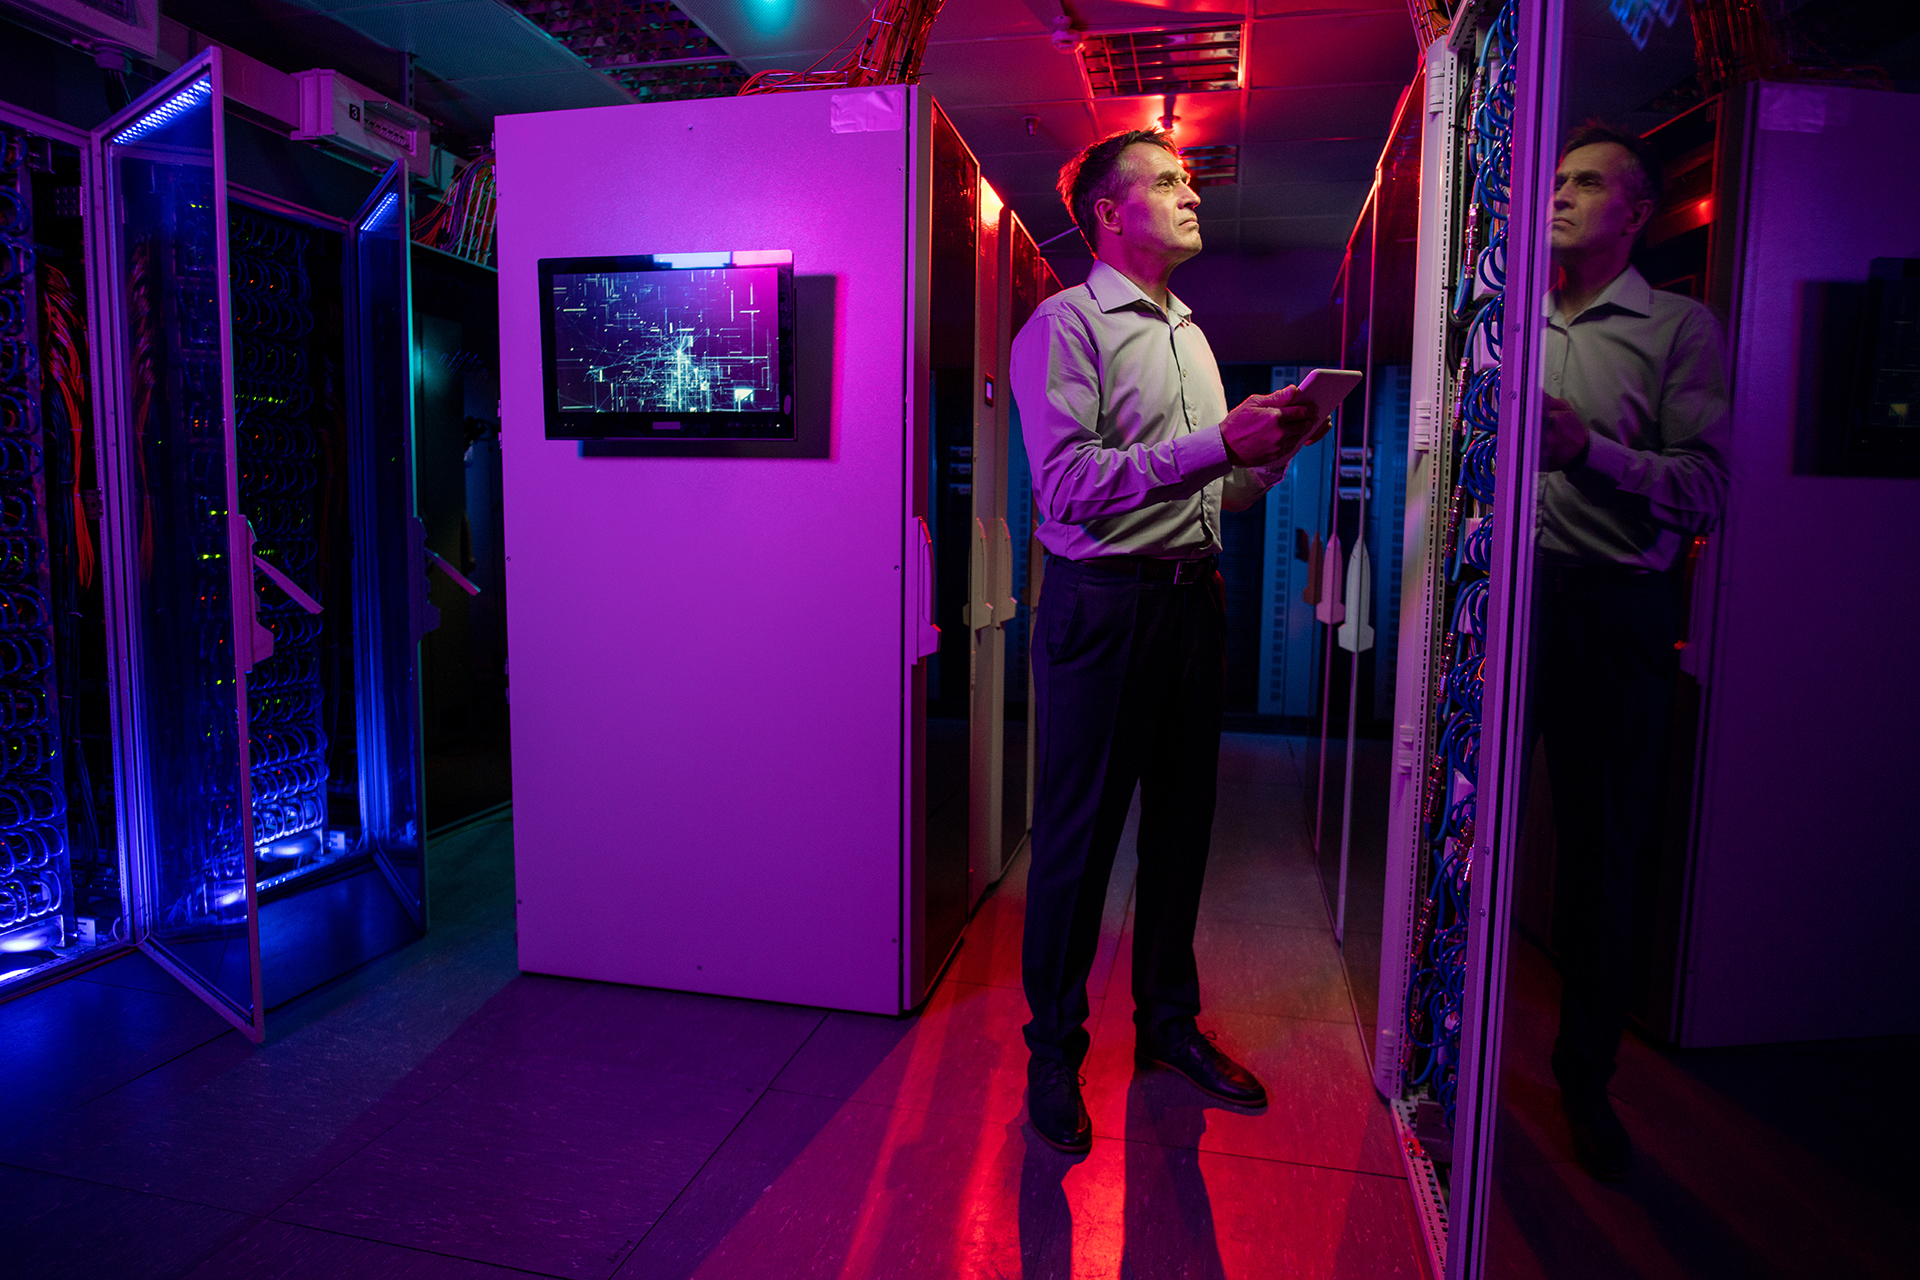 Upgrade your data center with minimal downtime